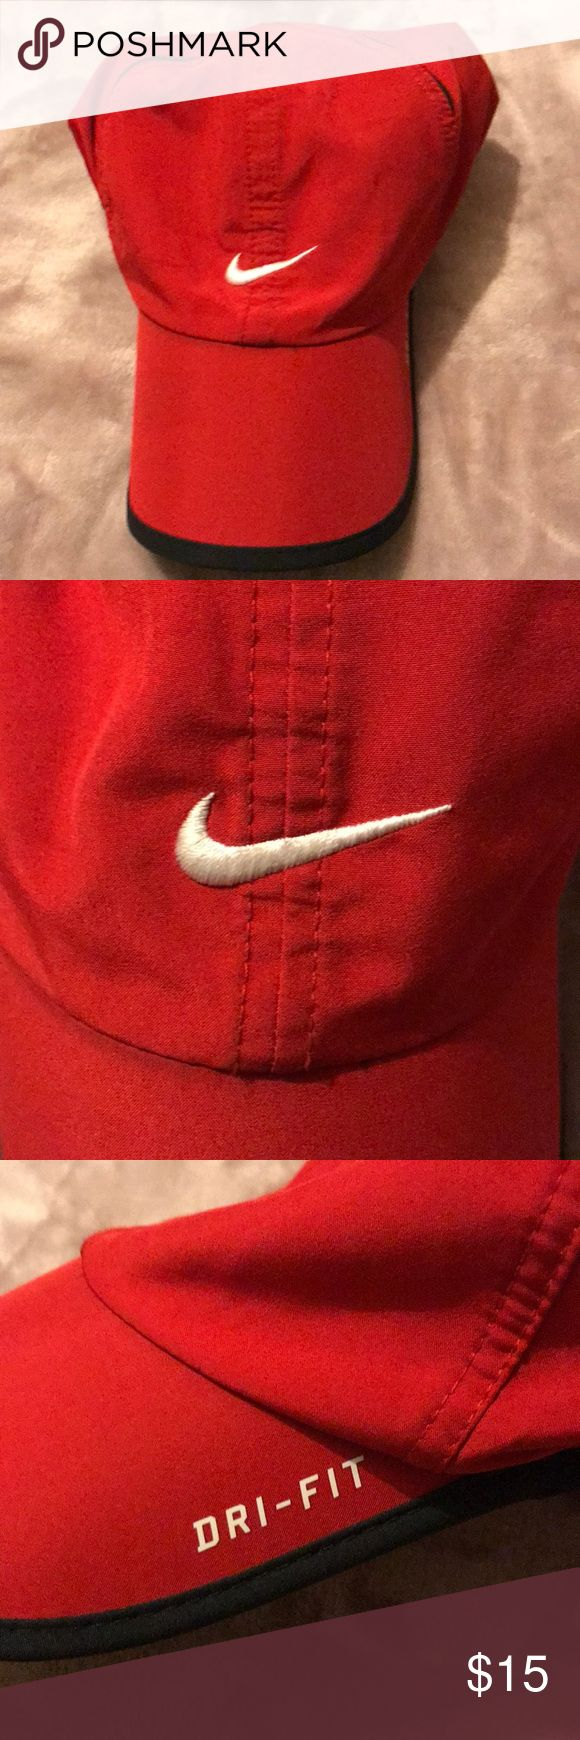 Nike Dri-Fit Hat -red nike hat with black trimming  -dri-fit - 2 stains (shown in photo): would probably come out if washed Nike Accessories Hats